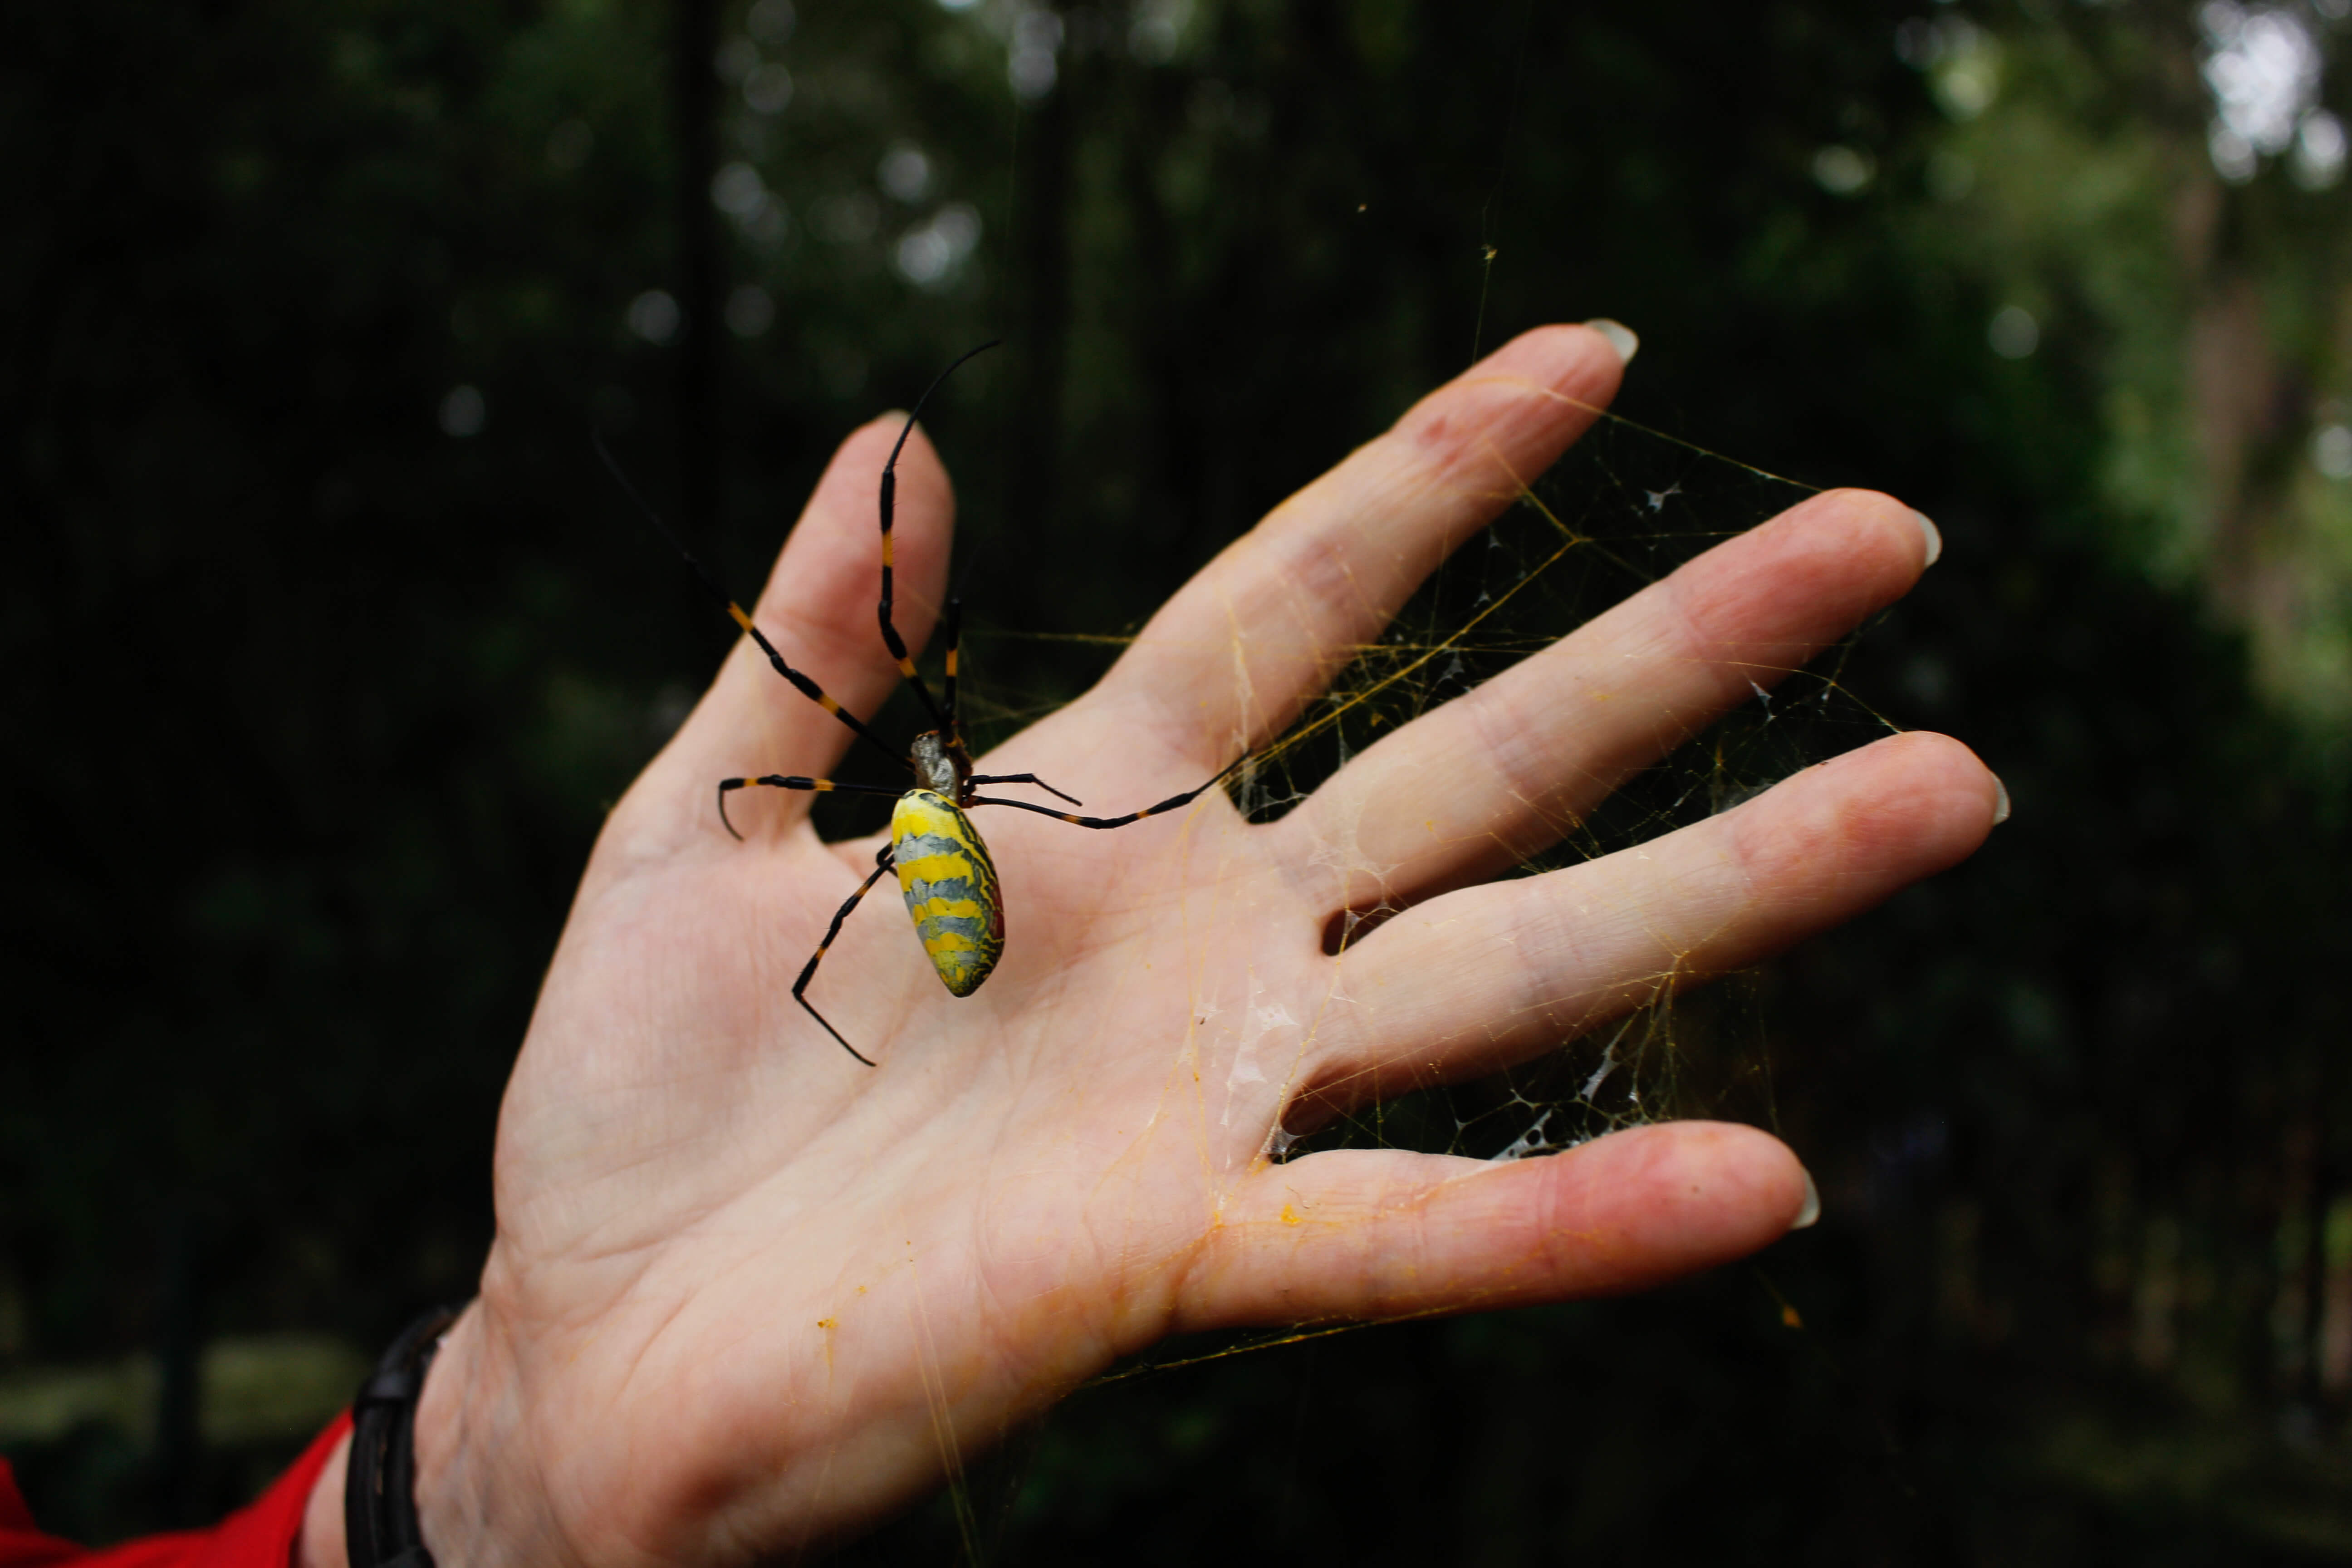 Joro spider compared to adult female's hand